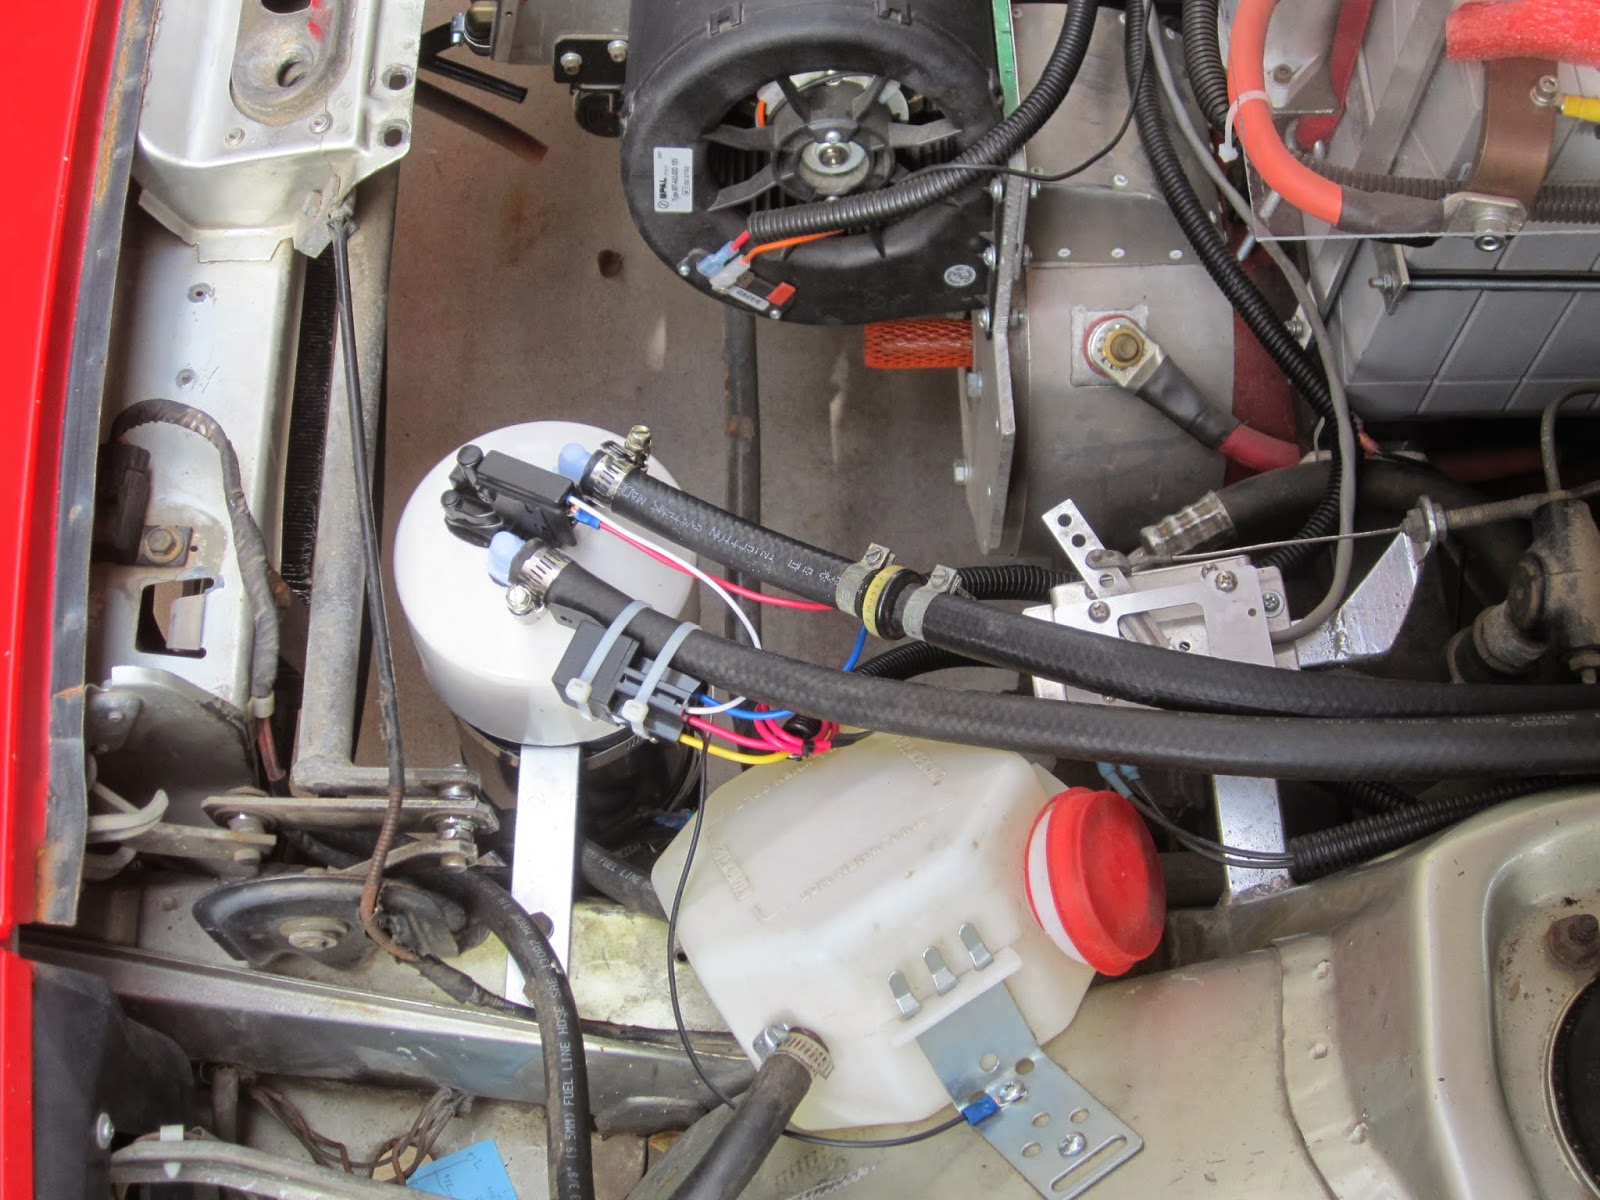 Porsche 924 Electric Conversion Fan Wiring Heres Another View That Bulge In The Other Tube Is A Check Valve Reason For This When Pump Turns Off You Dont Want Air To Rush Back Into